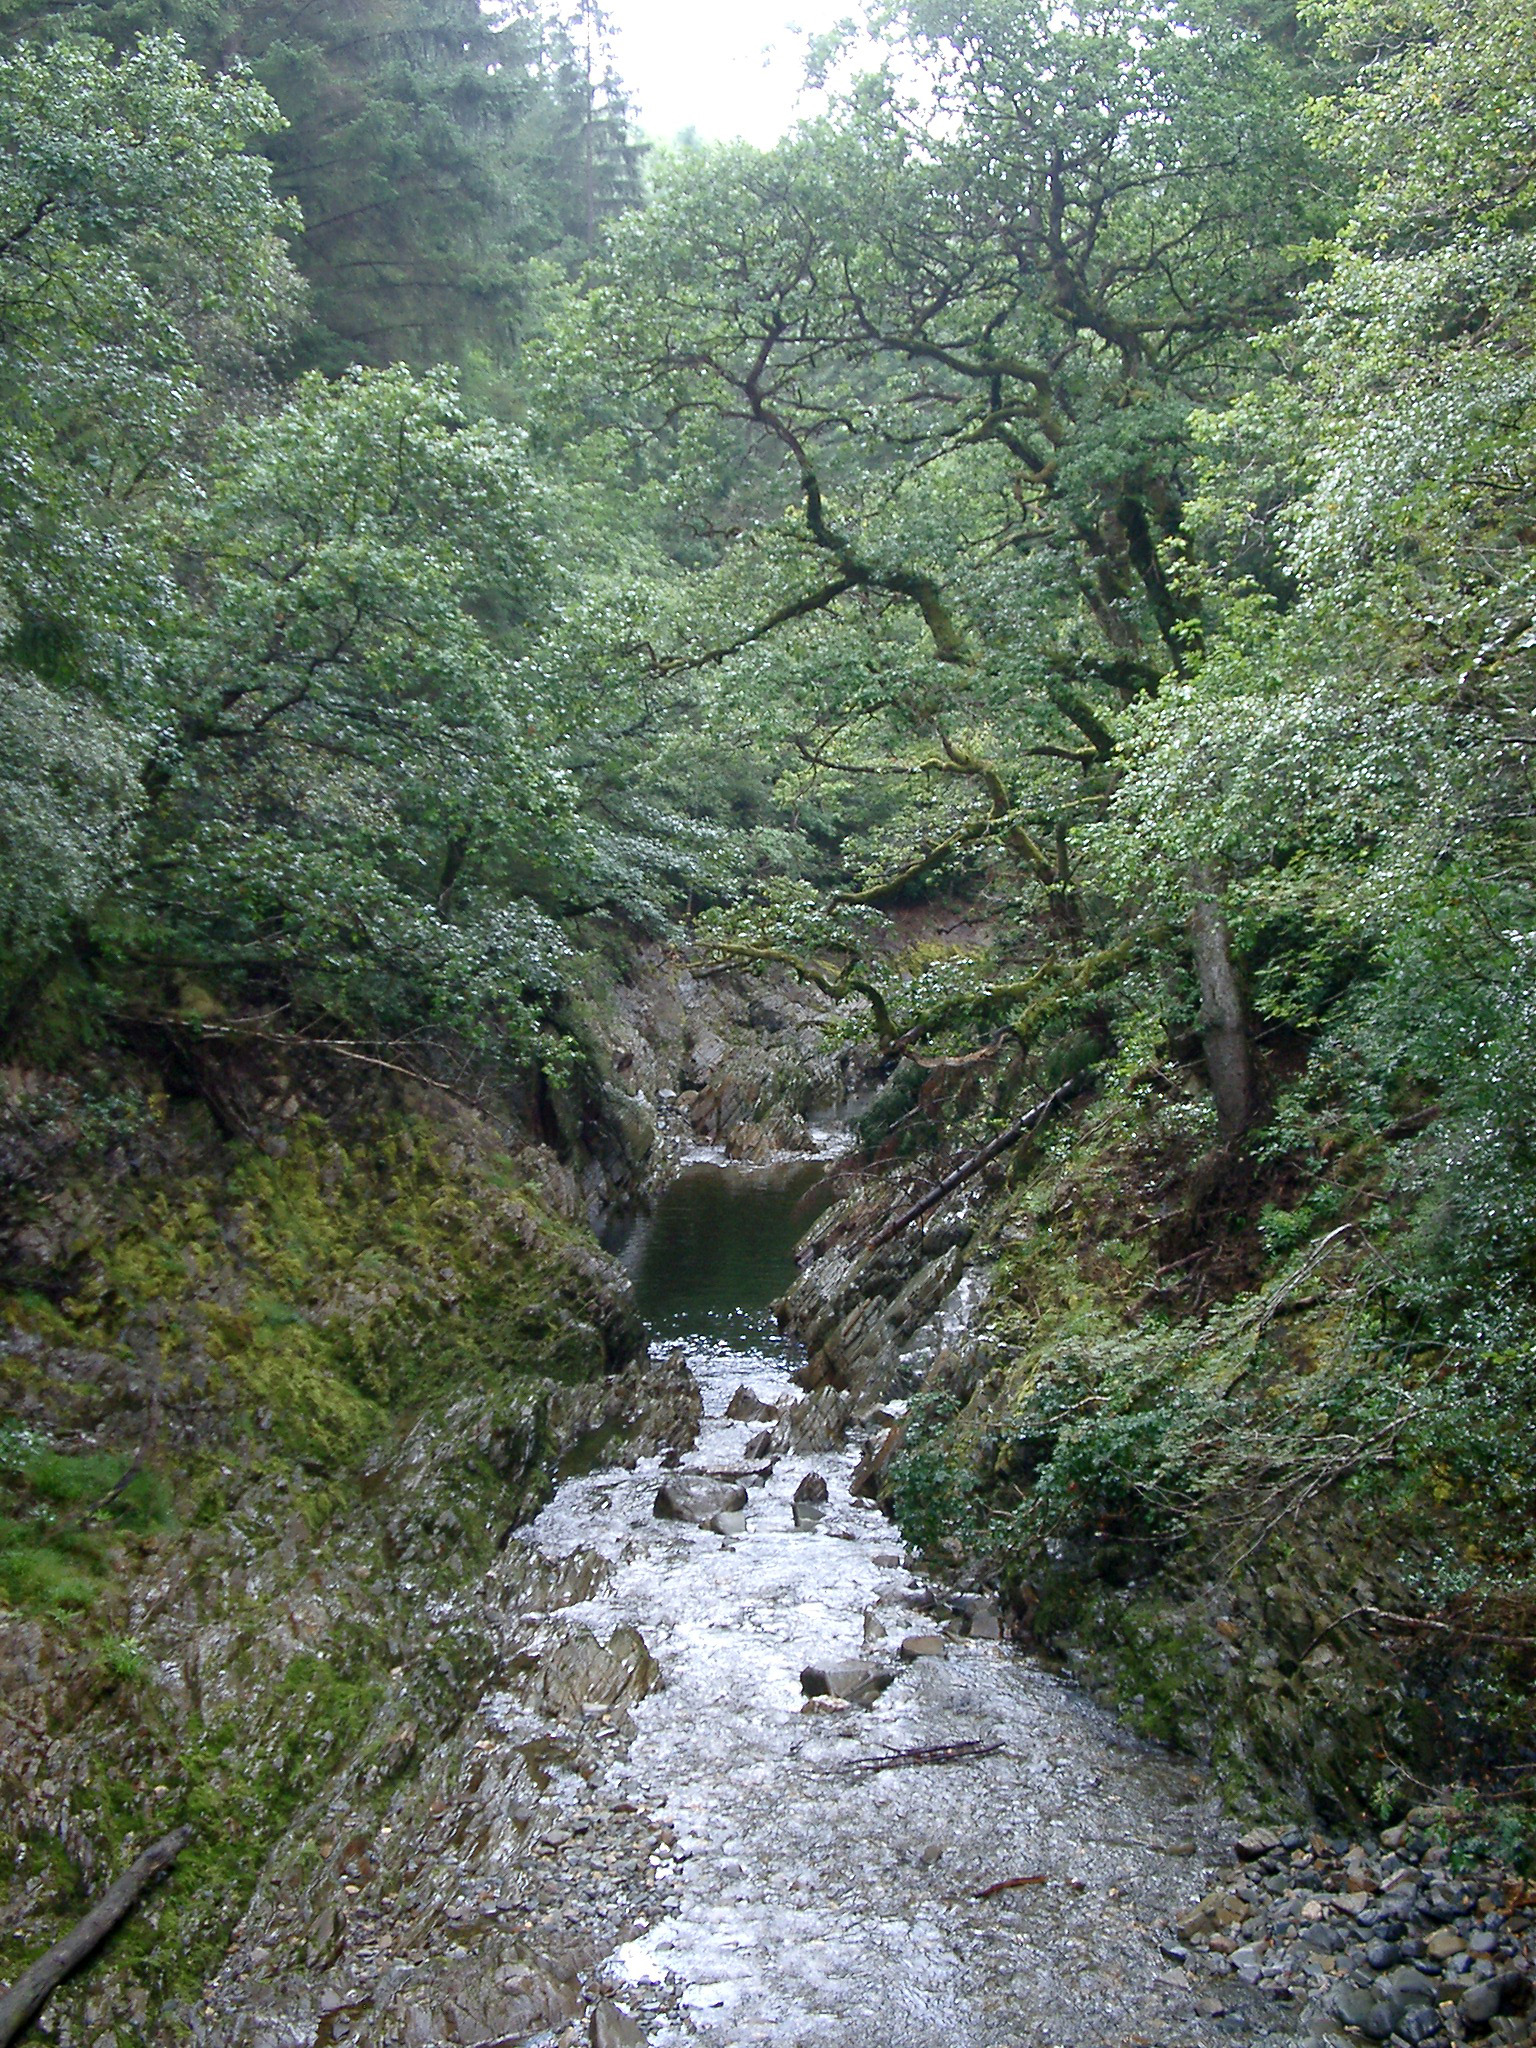 River flowing with melt water in a leafy green woodland landscape with overhanging trees in Wales